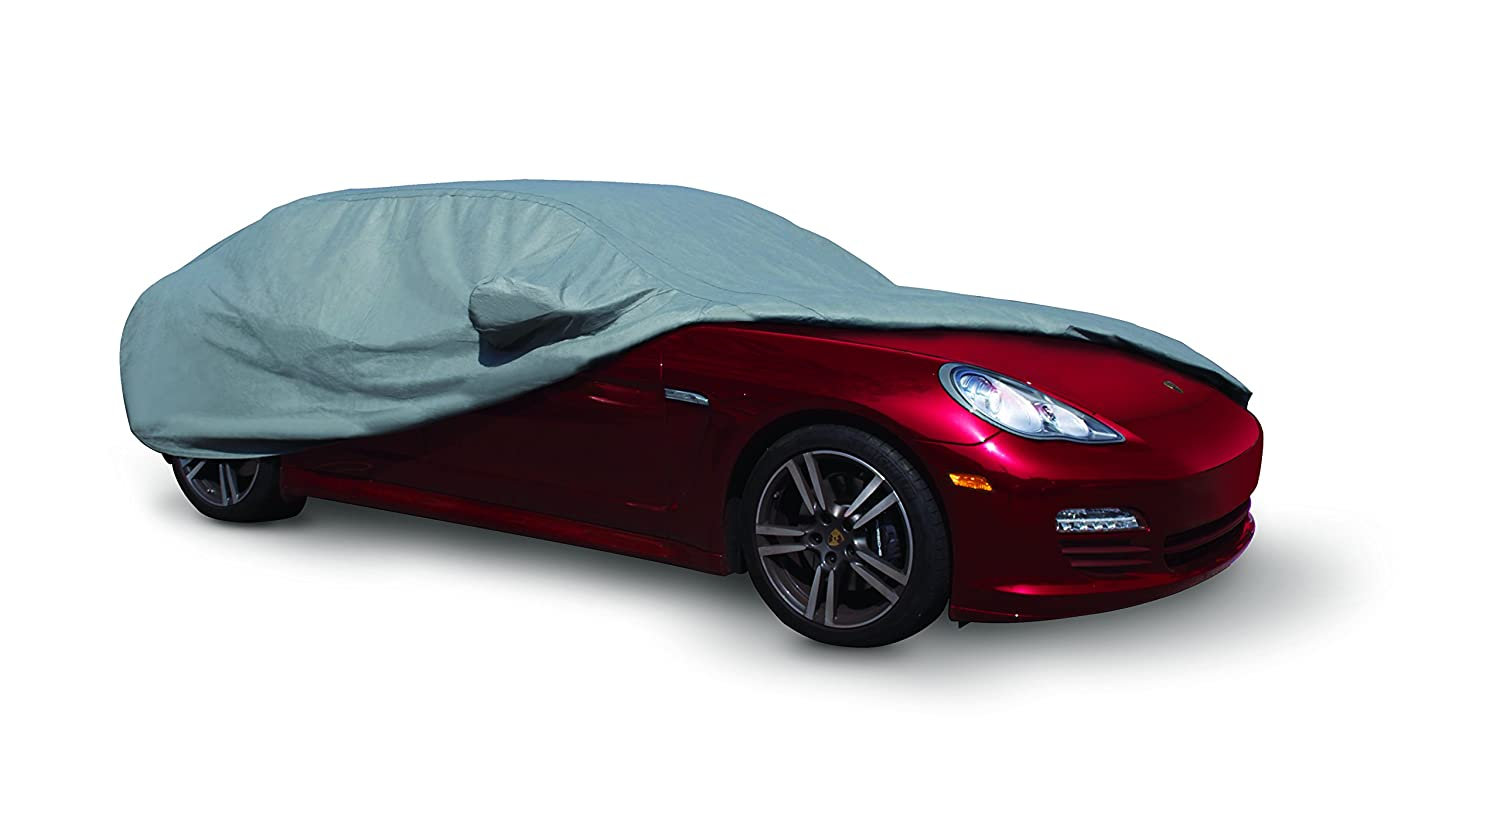 ADCO 31009 Gray Model F Armor 400 Universal Car Cover, Fits Cars 161-176 Long